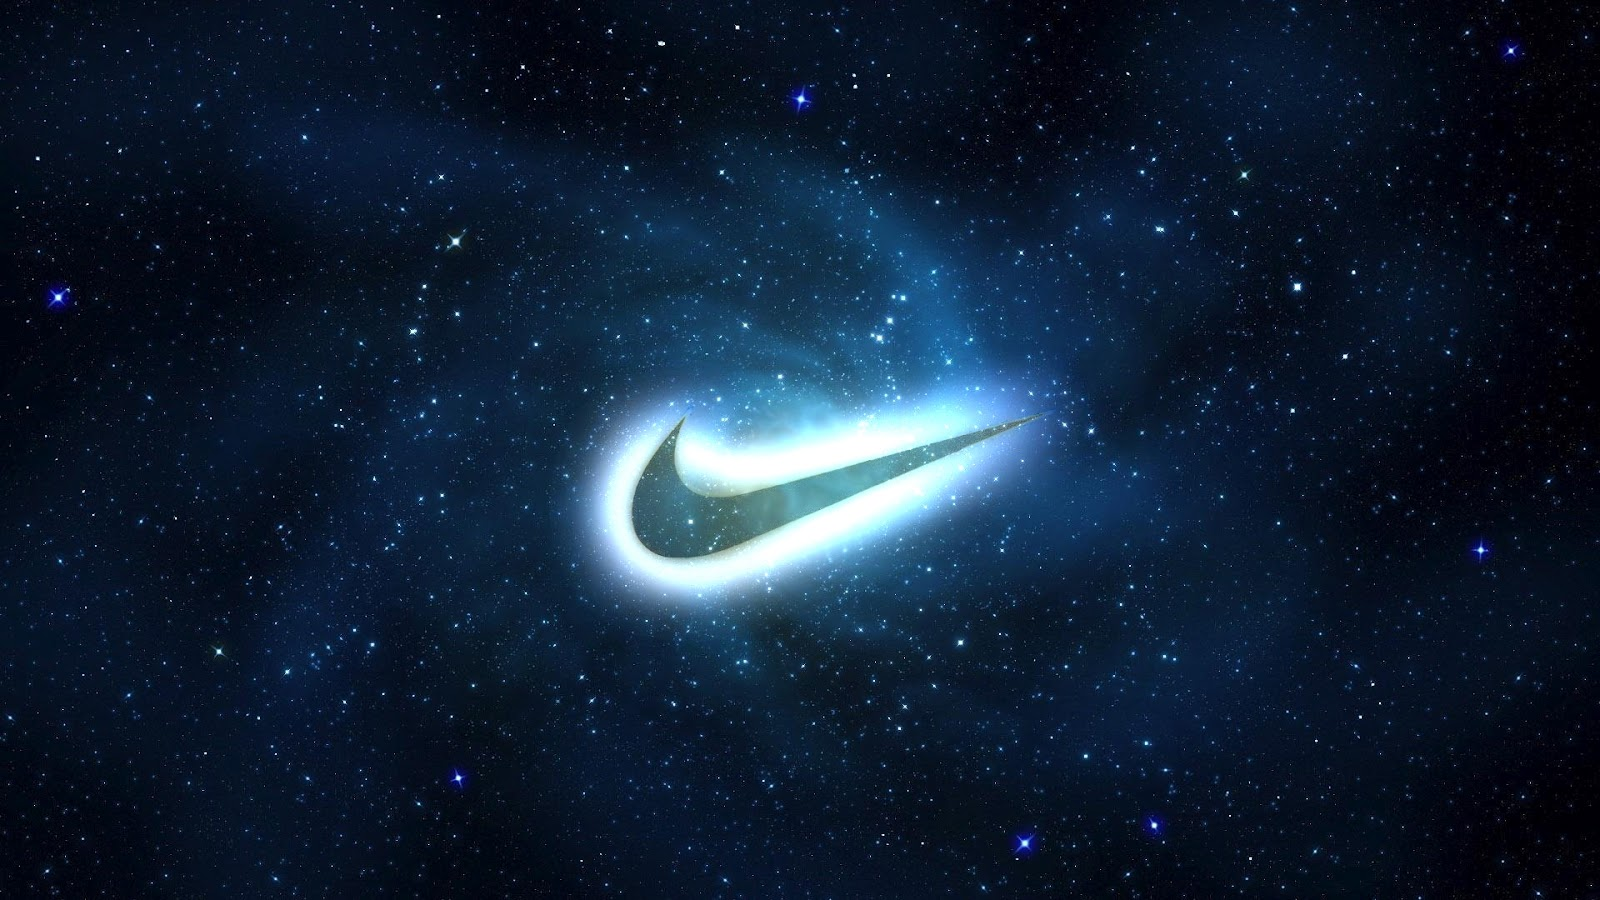 nike wallpaper hd 8156